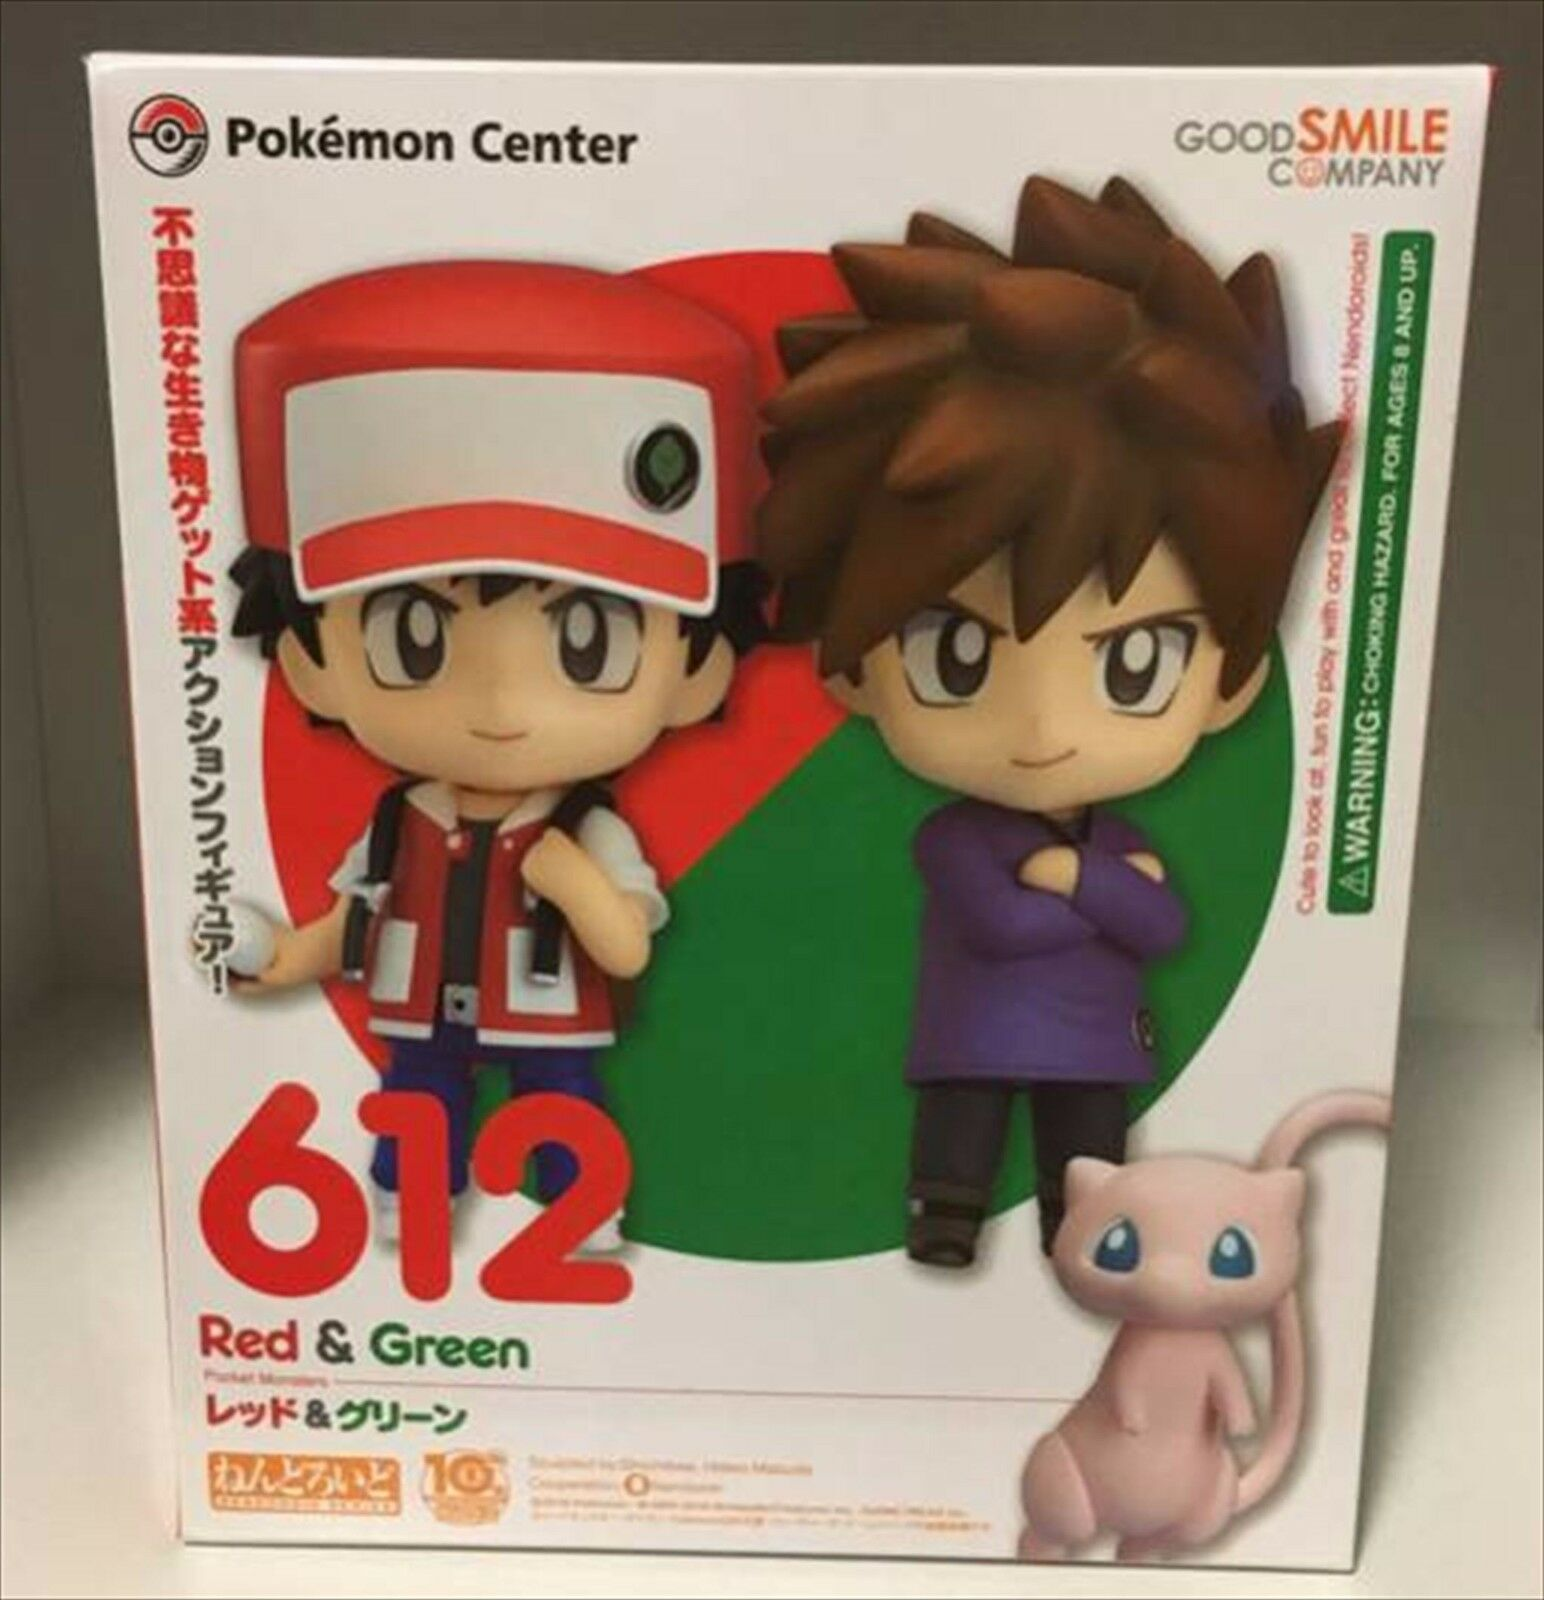 NEW Nendoroid Pokemon Trainer set ROT & Grün special ver. 20th Anniversary F/S